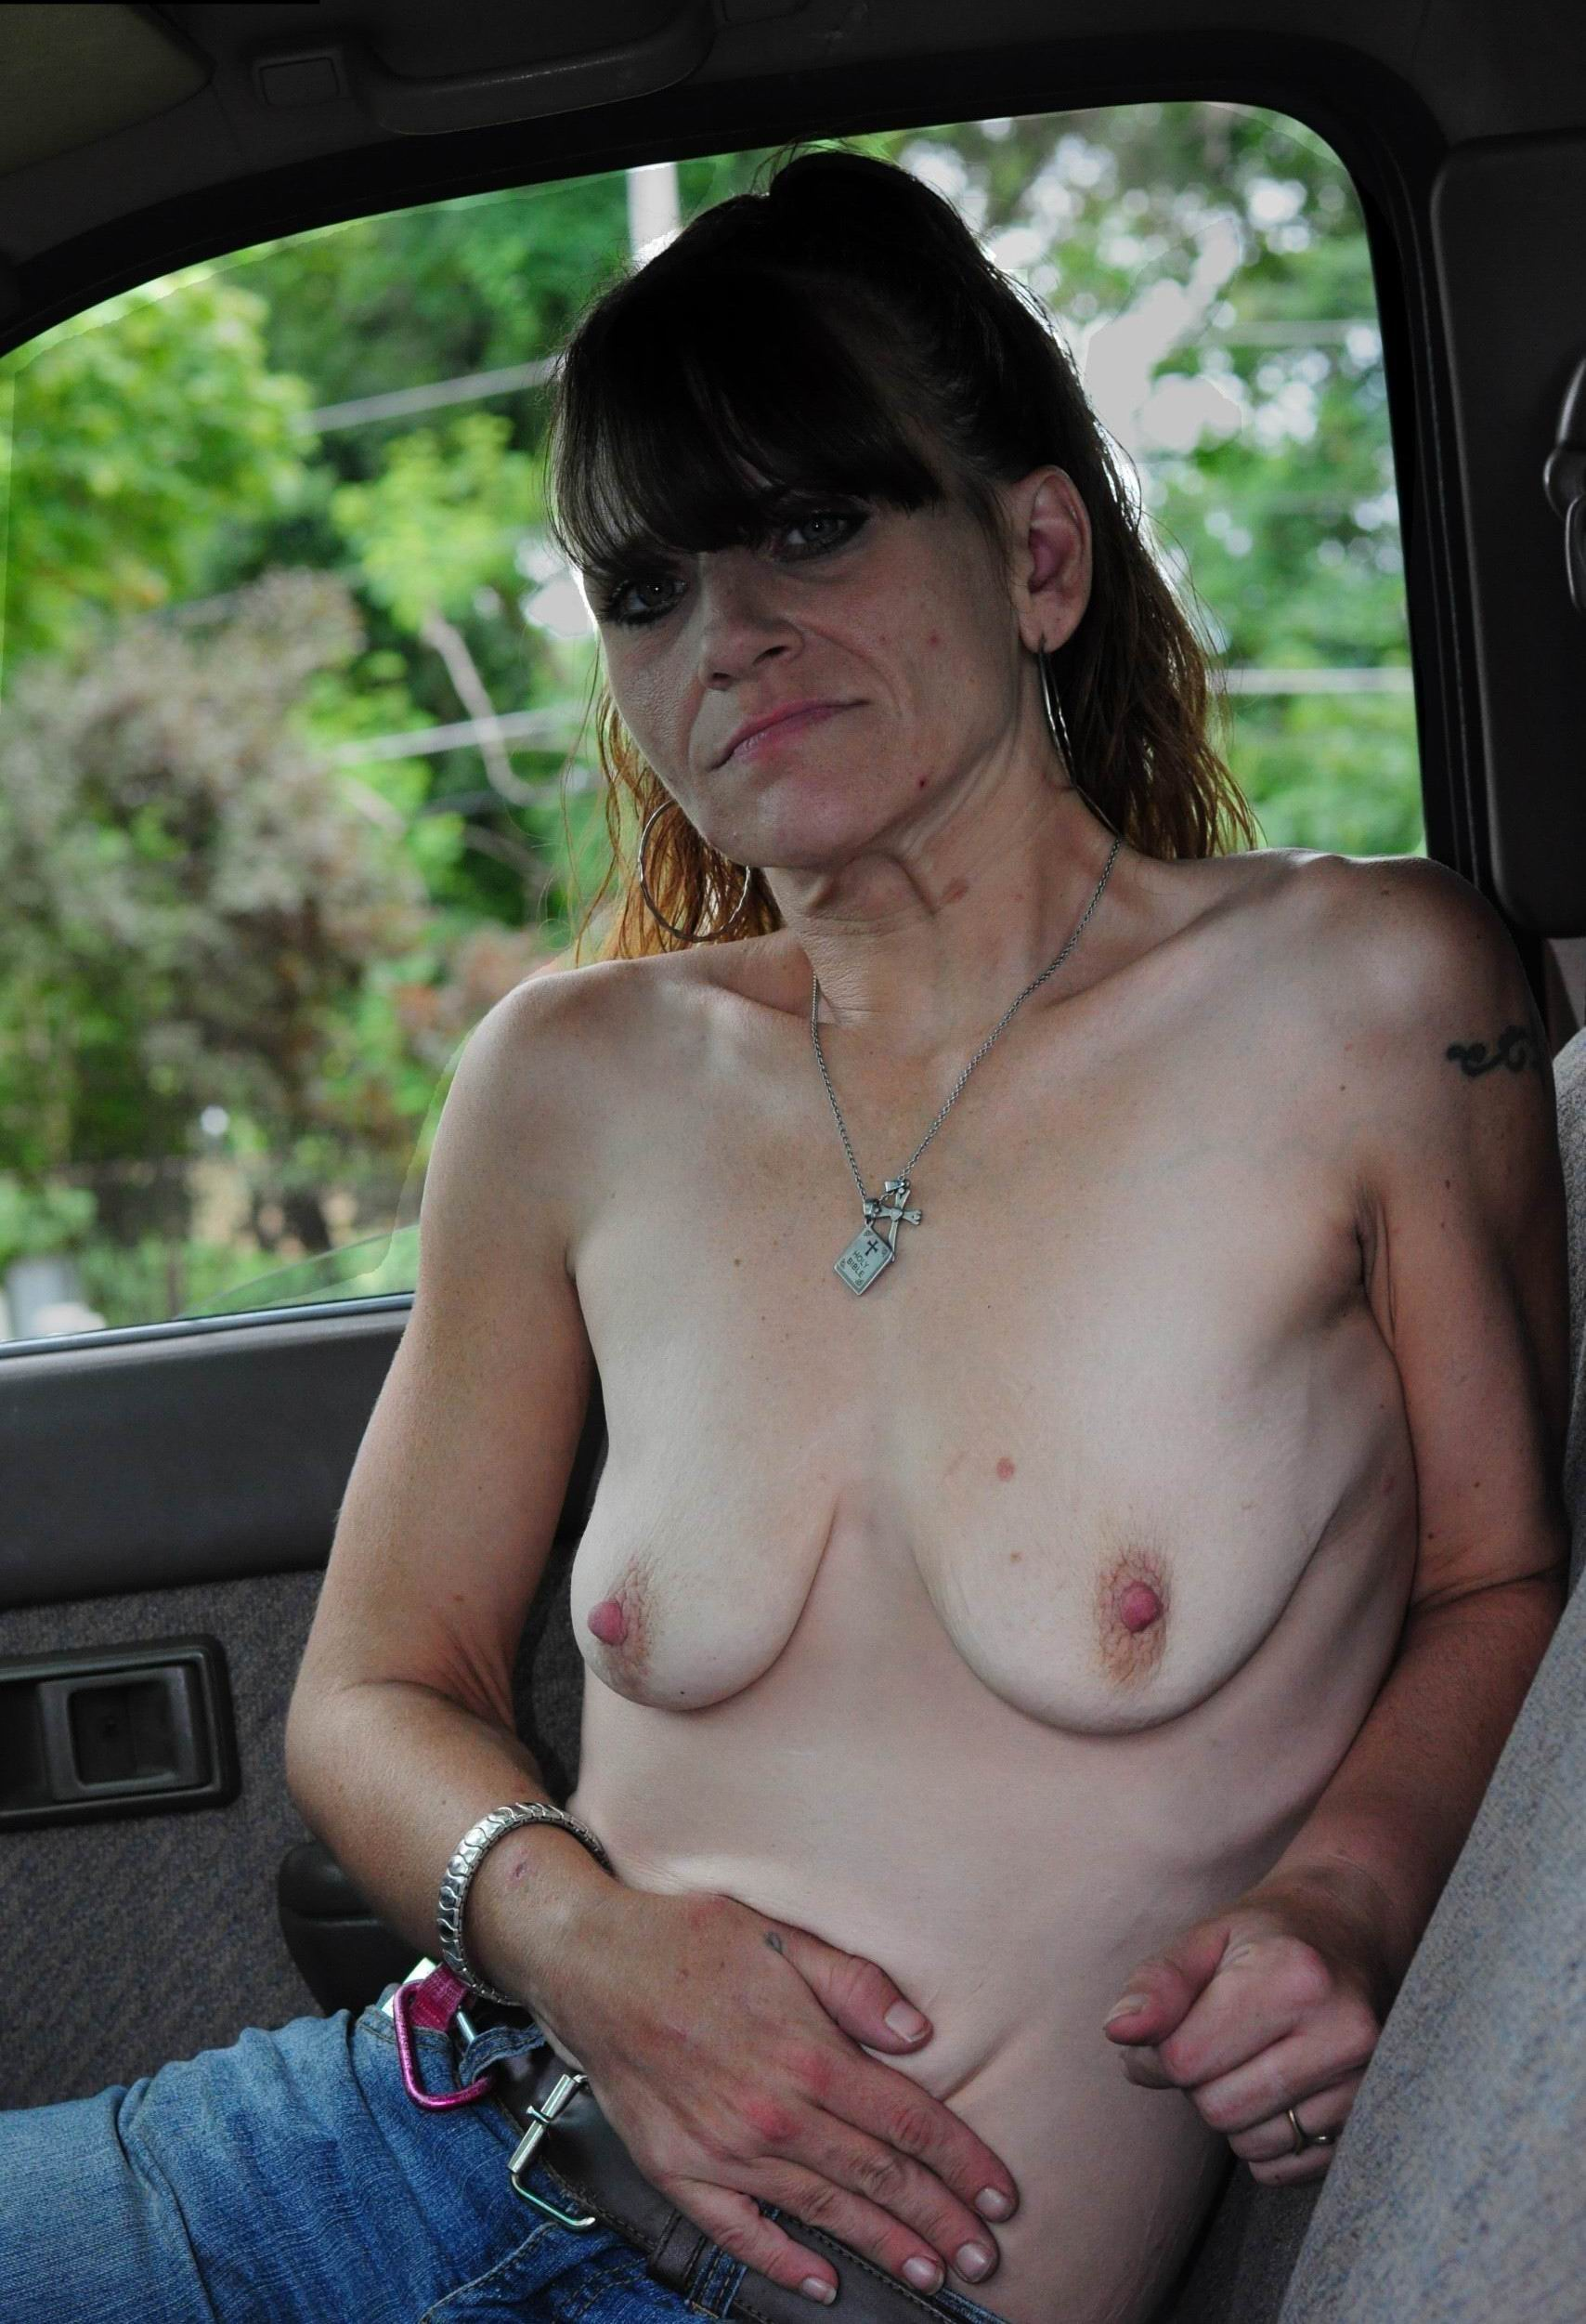 tits girl Weird ugly